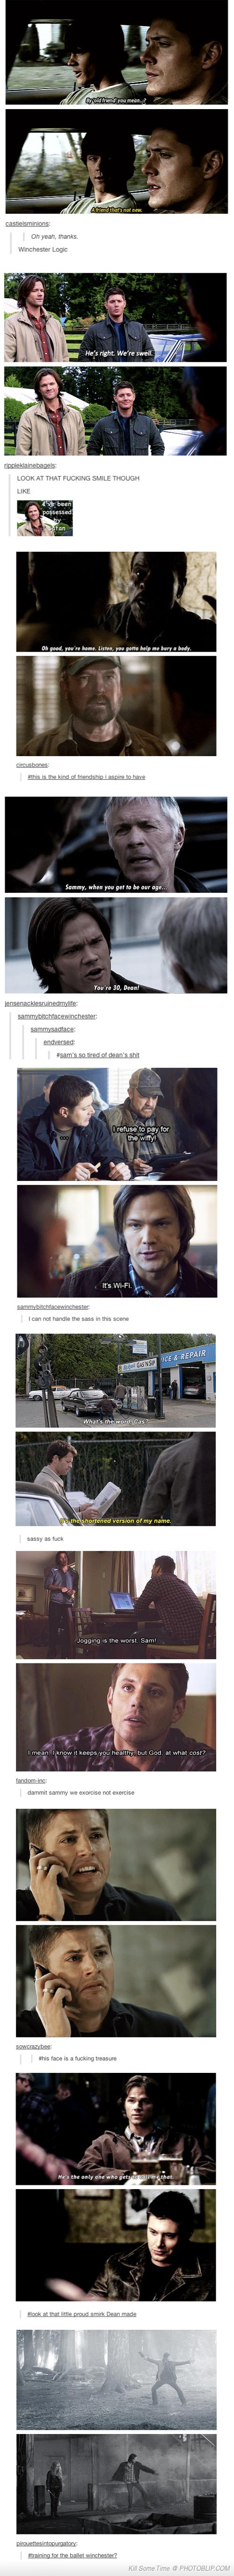 supernatural tumblr posts